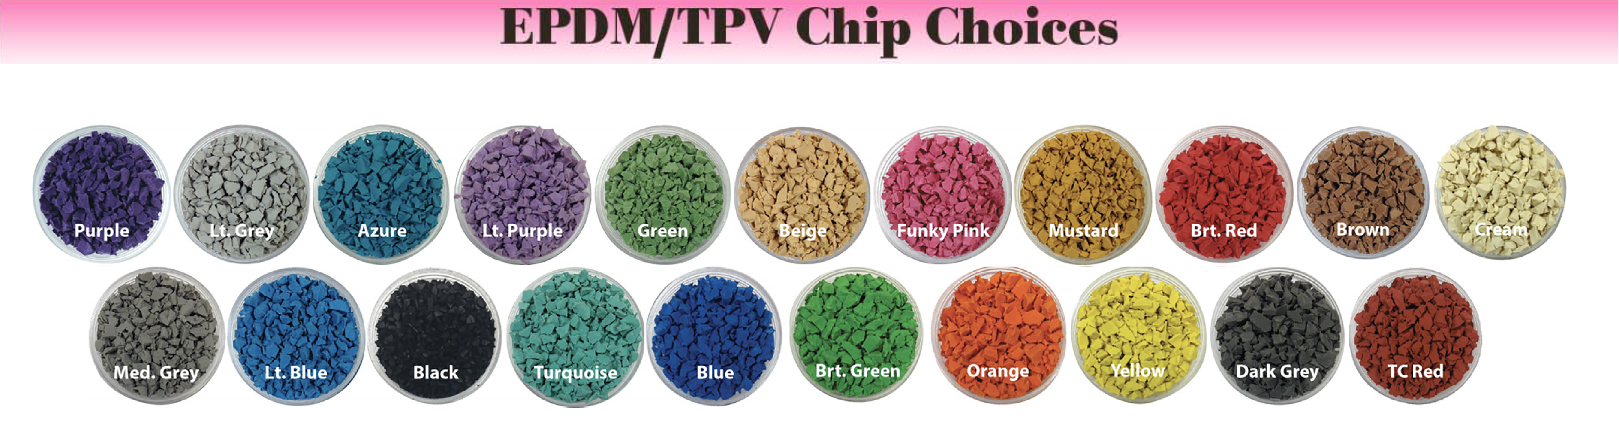 UNITY Showing the TPV Color Choices for 2020